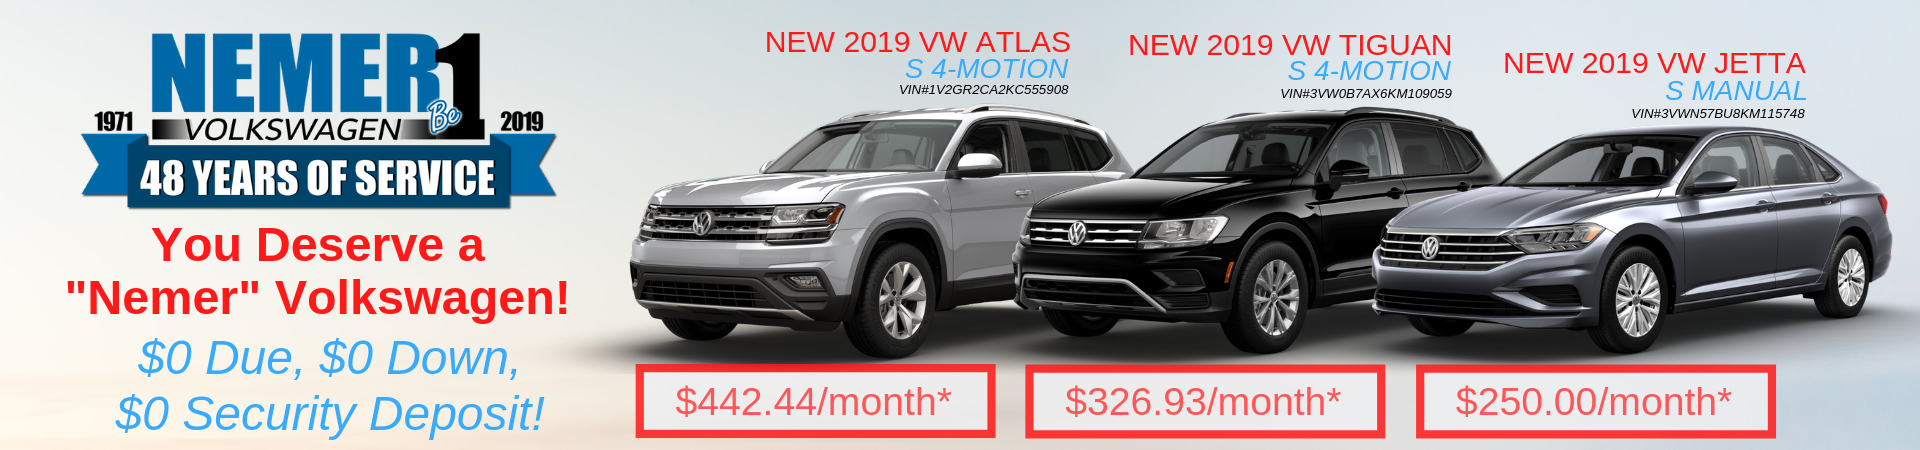 VW $0 Down Leases June 2019